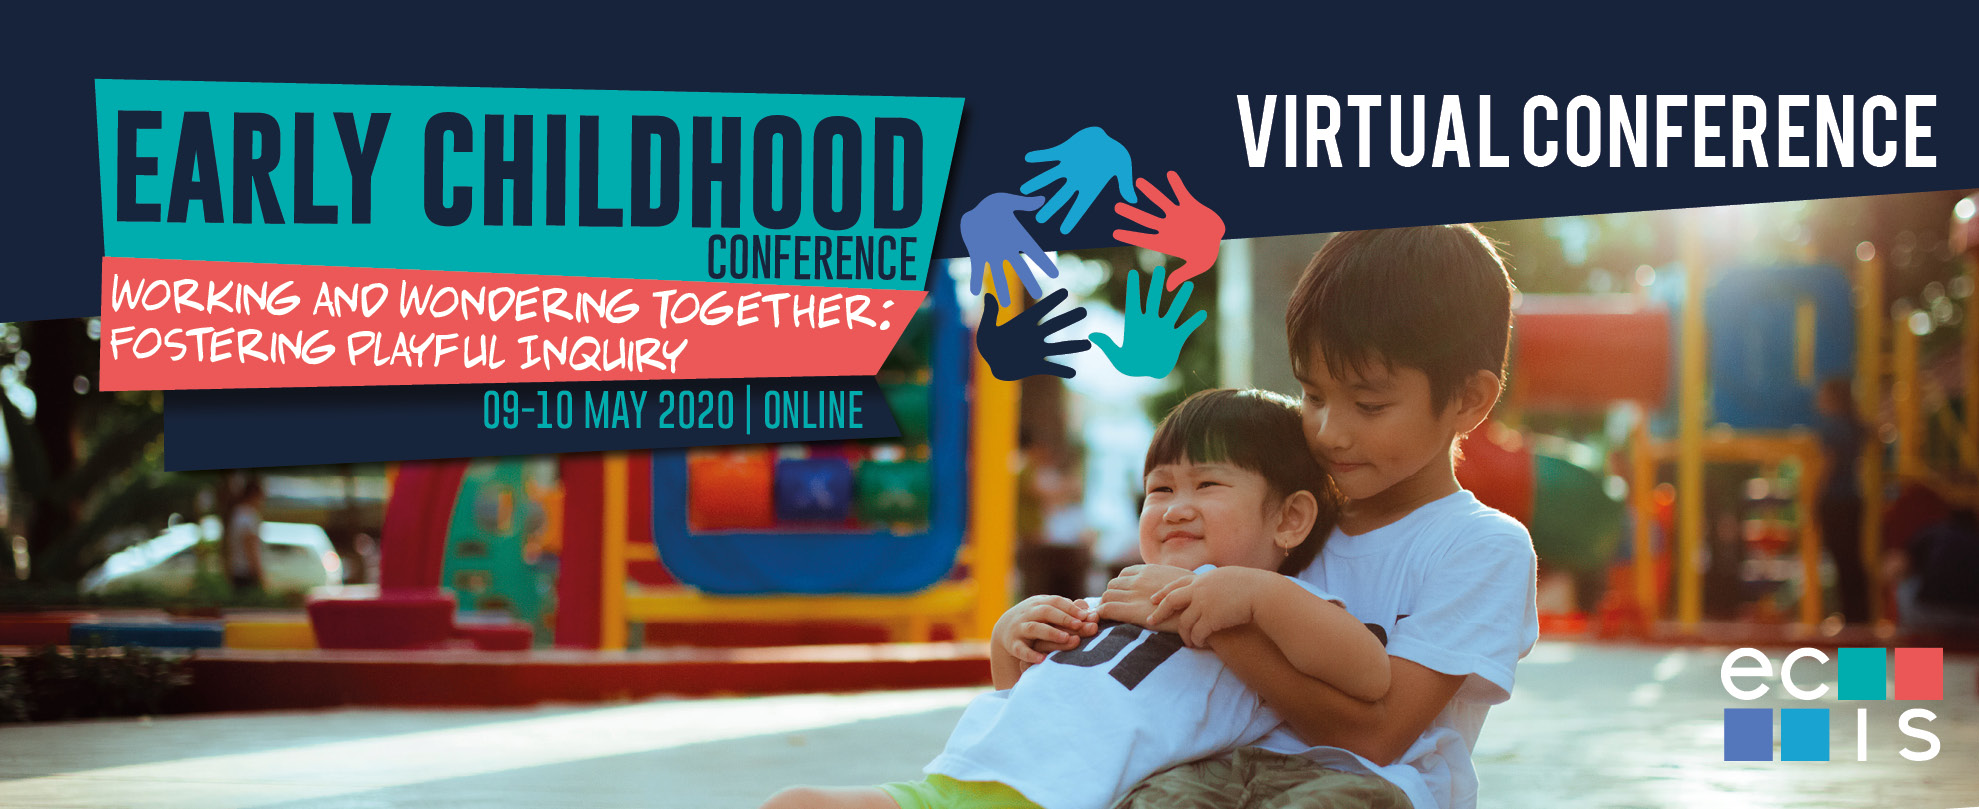 ECIS Virtual Early Childhood Conference 2020